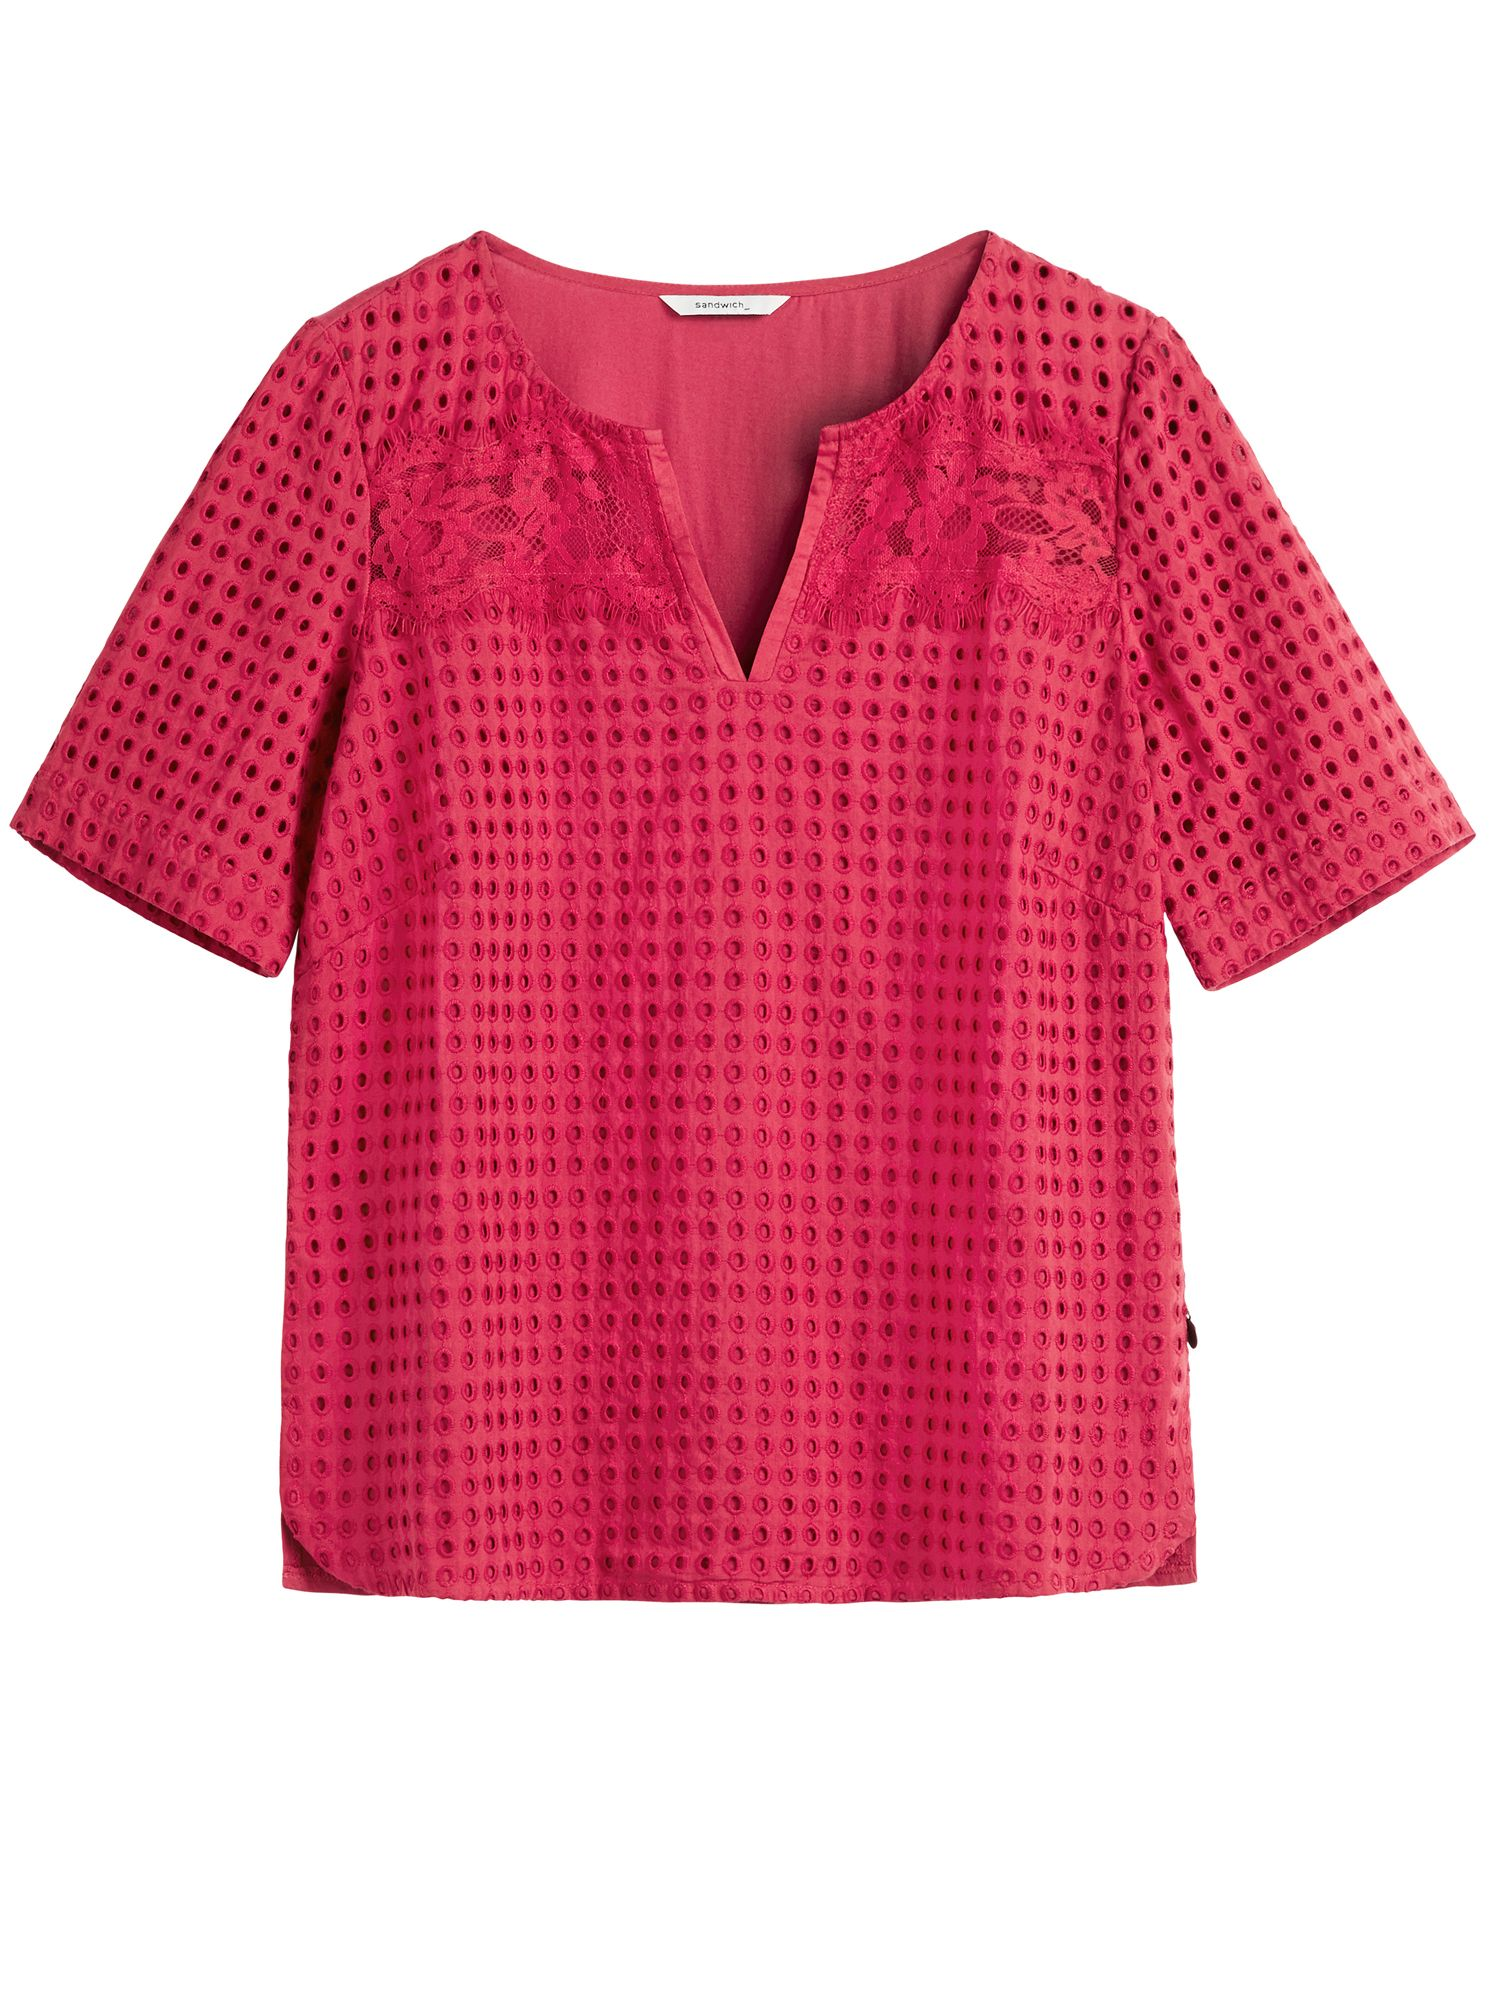 Sandwich Broderie Anglaise Top With Lace Detail, Red